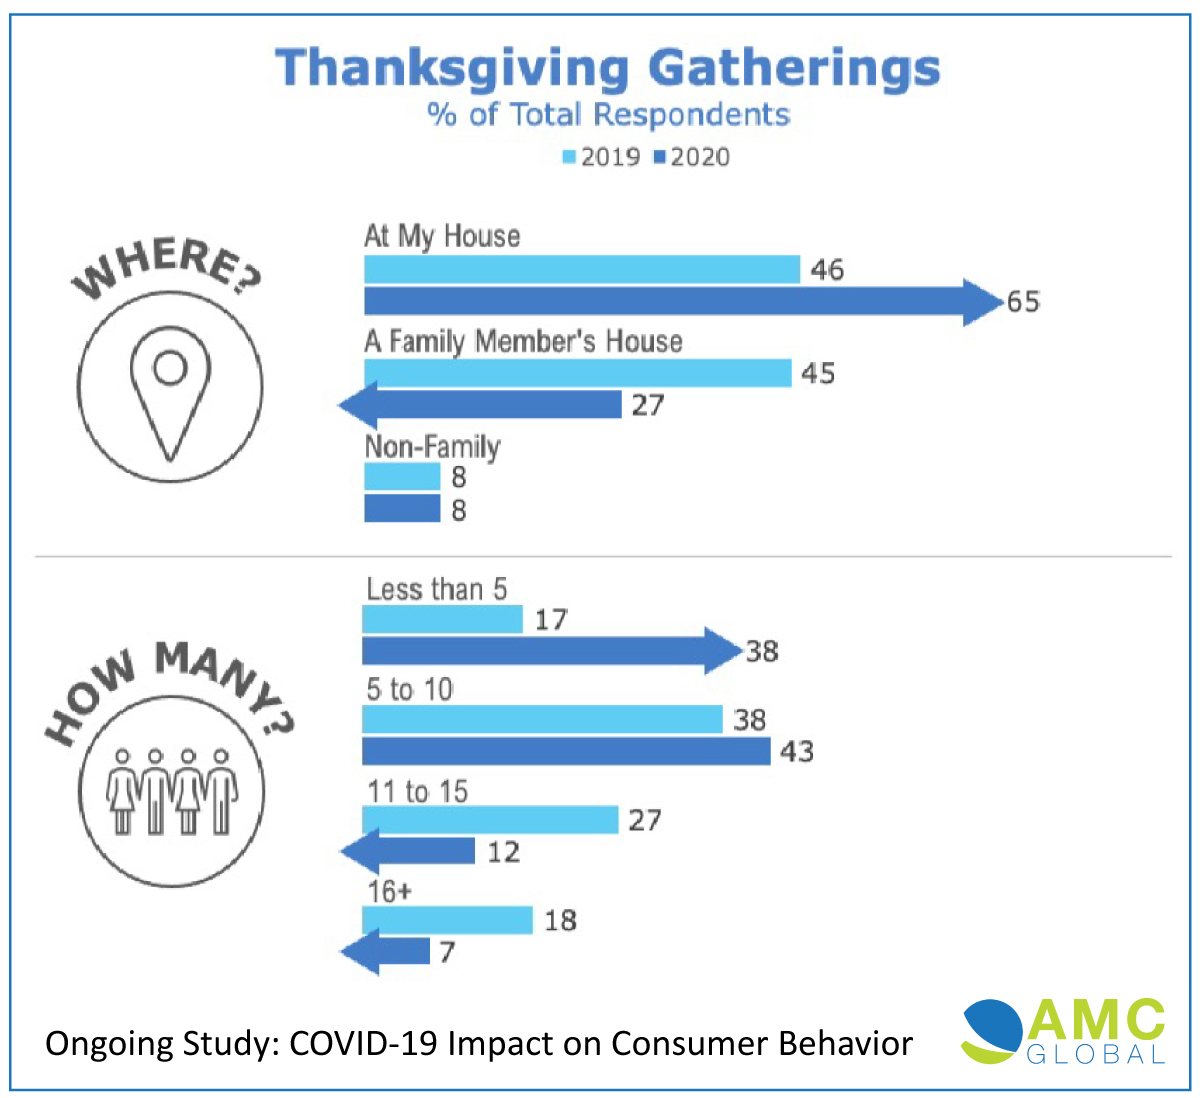 AMC Global Thanksgiving Plans